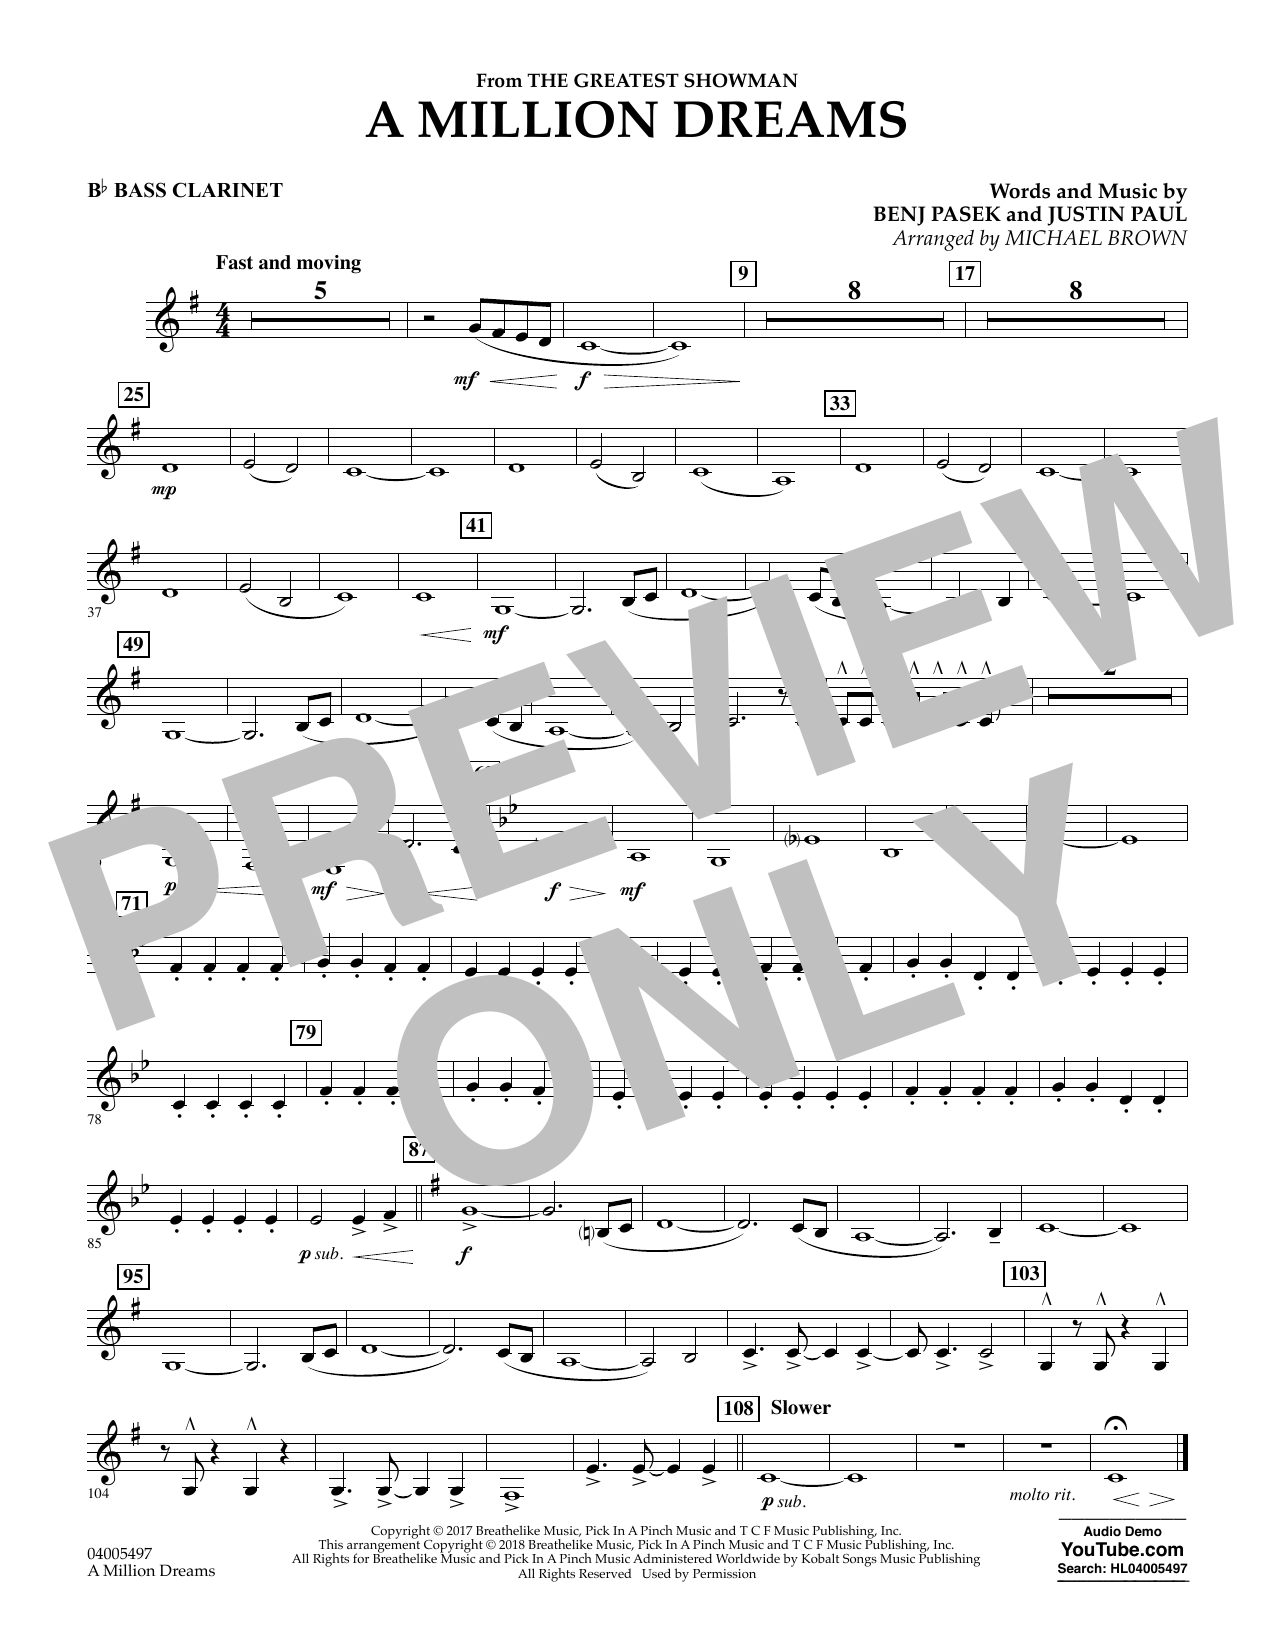 Pasek & Paul A Million Dreams (from The Greatest Showman) (arr. Michael Brown) - Bb Bass Clarinet sheet music notes and chords. Download Printable PDF.